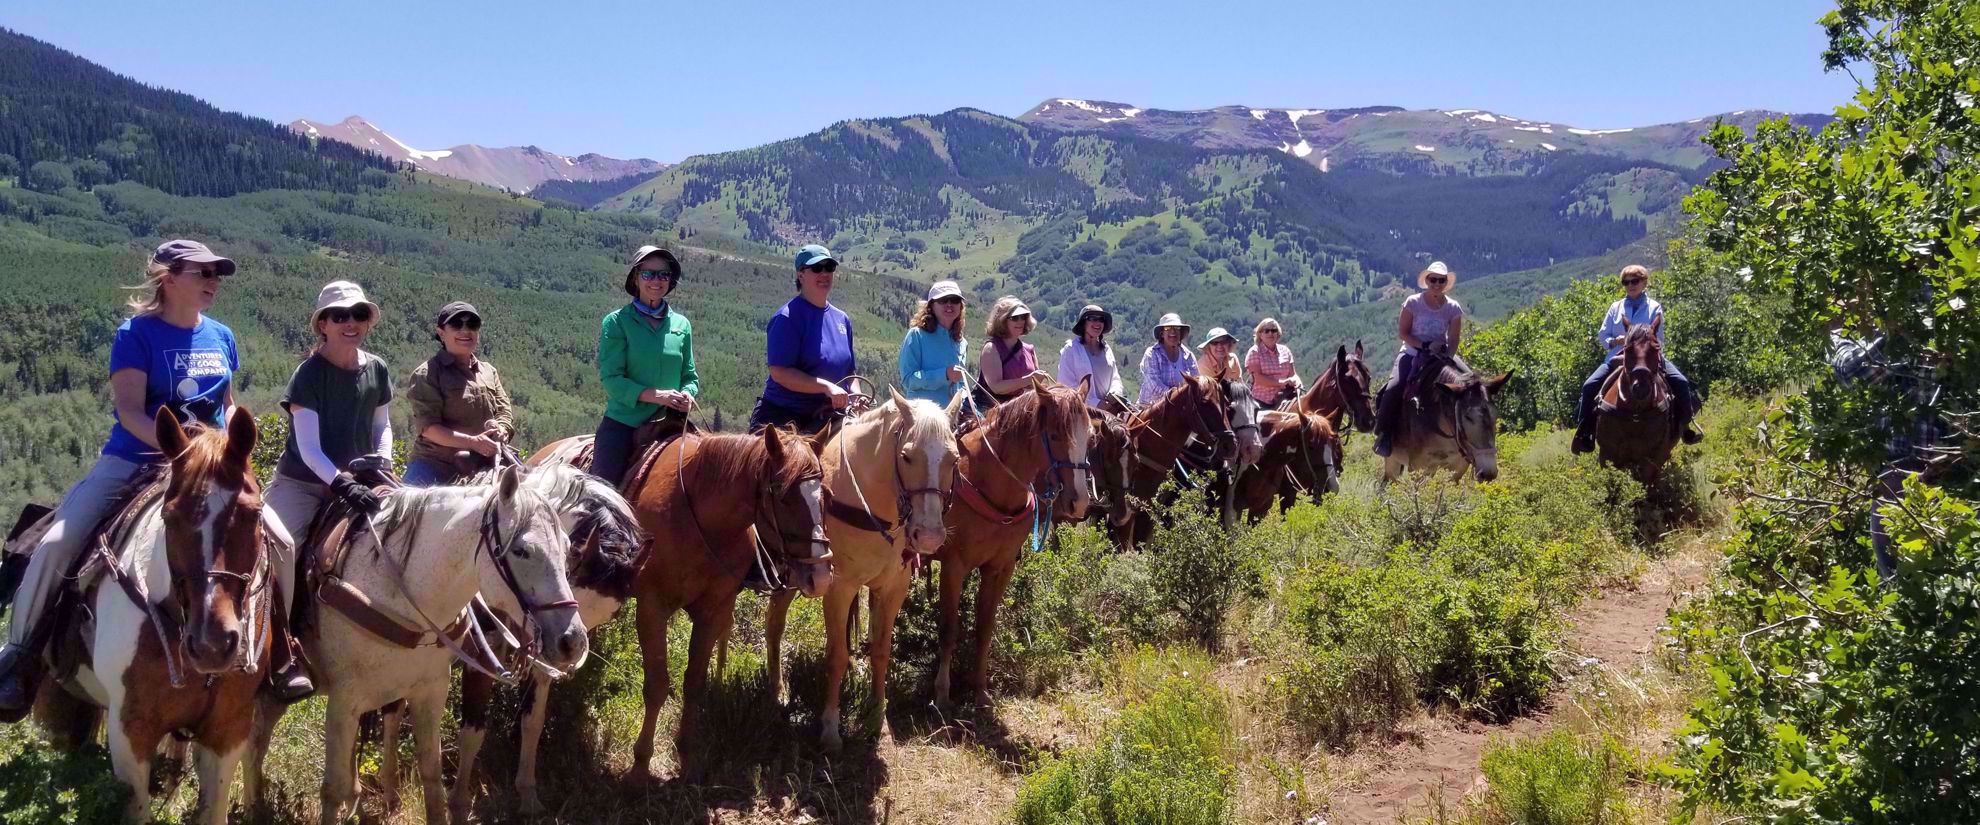 women riding horsback through colorado rockies on adventure group tour